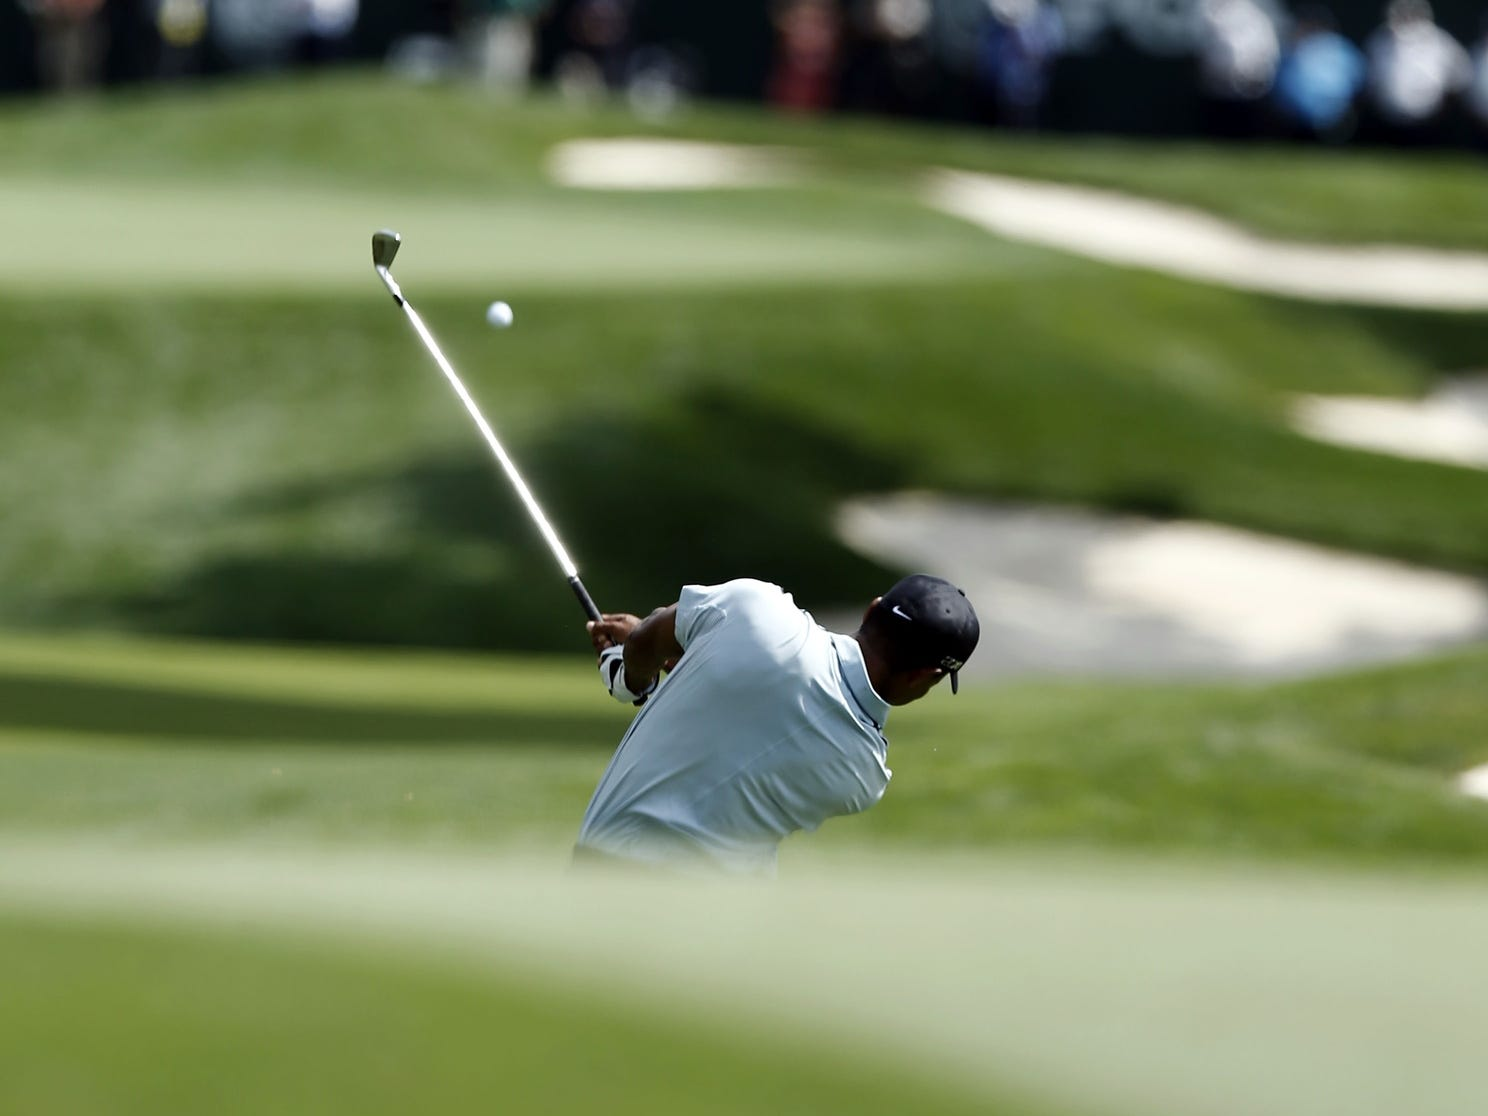 Tiger Woods hits his approach shot during his first round at Oak Hill for the PGA Championship.